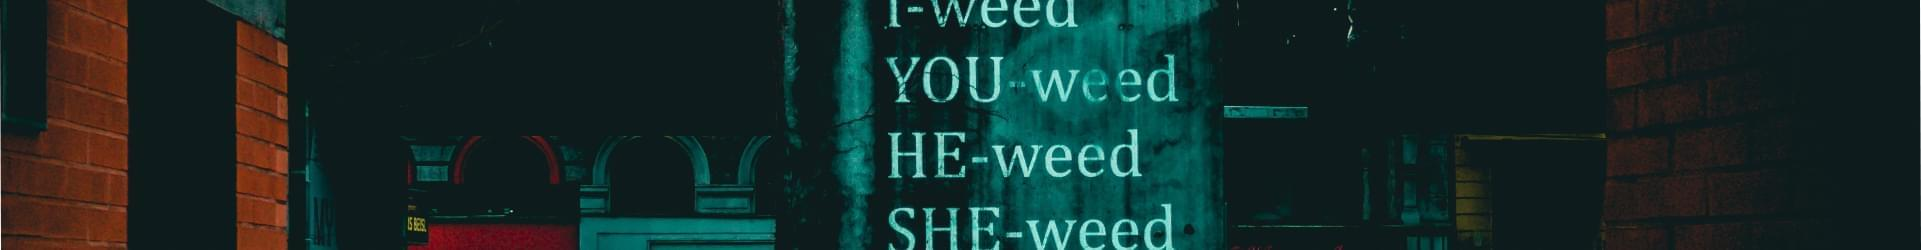 Weed banner image